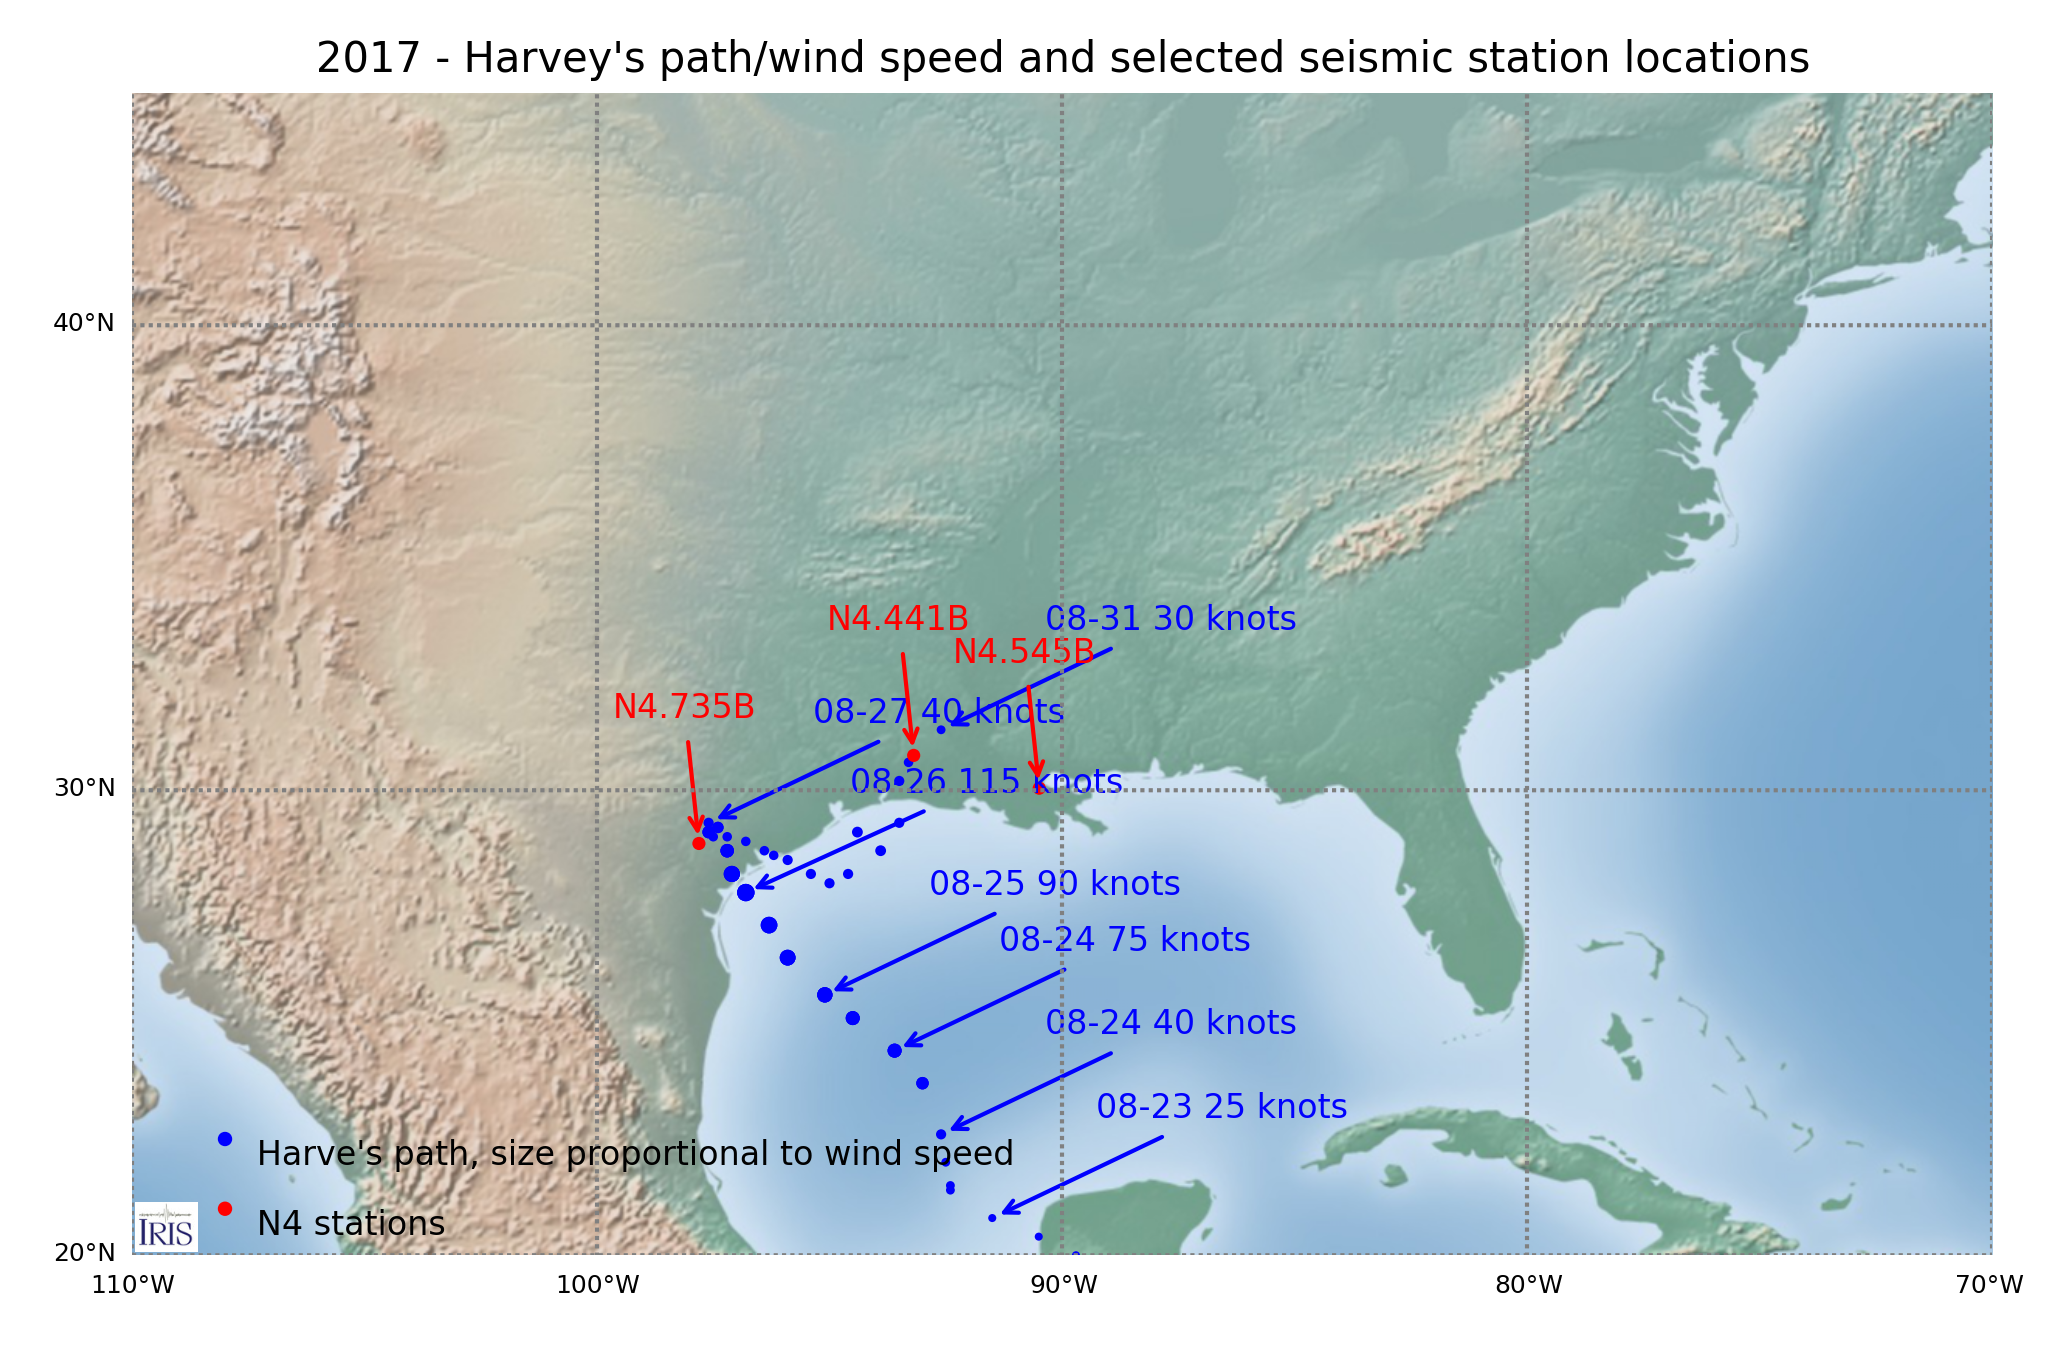 Path/wind speed of Harvey